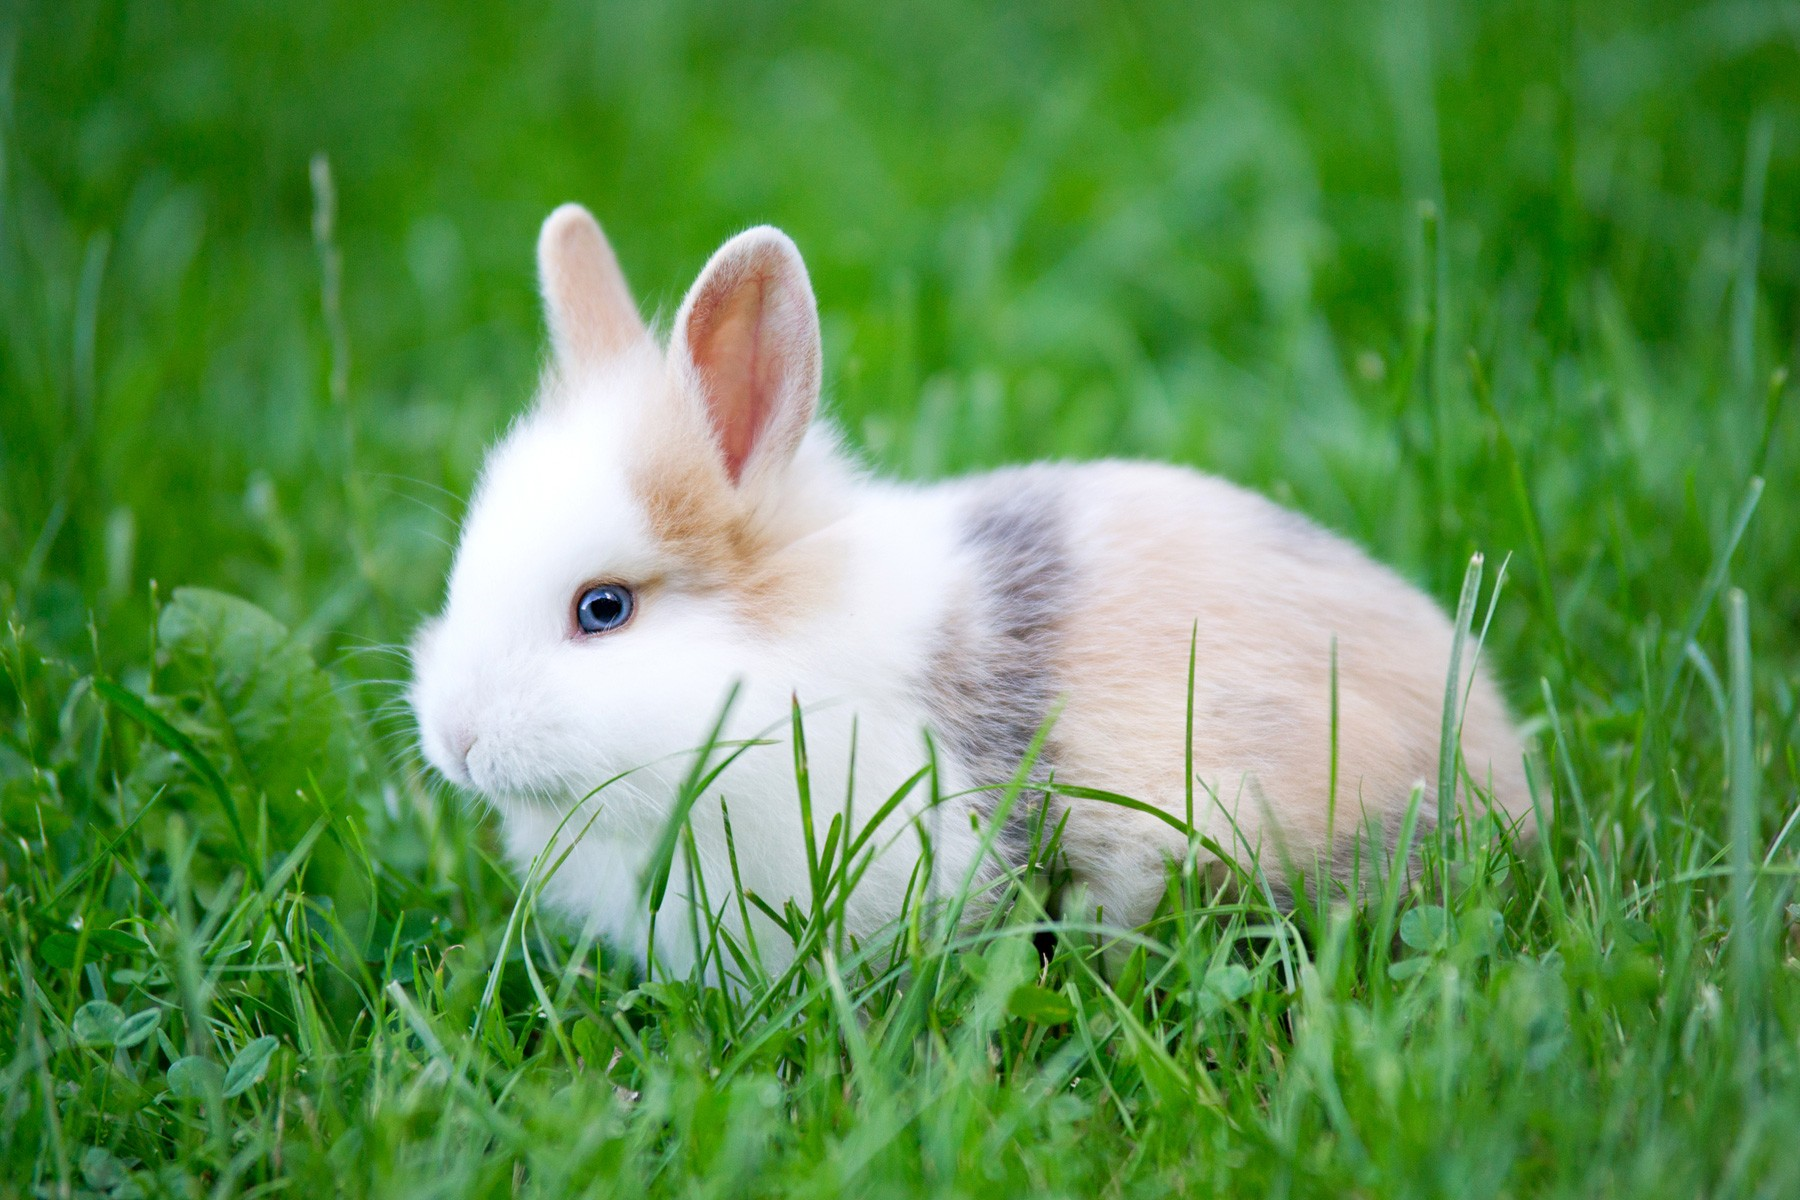 White Baby Rabbit (Bunny) With Blue Eyes